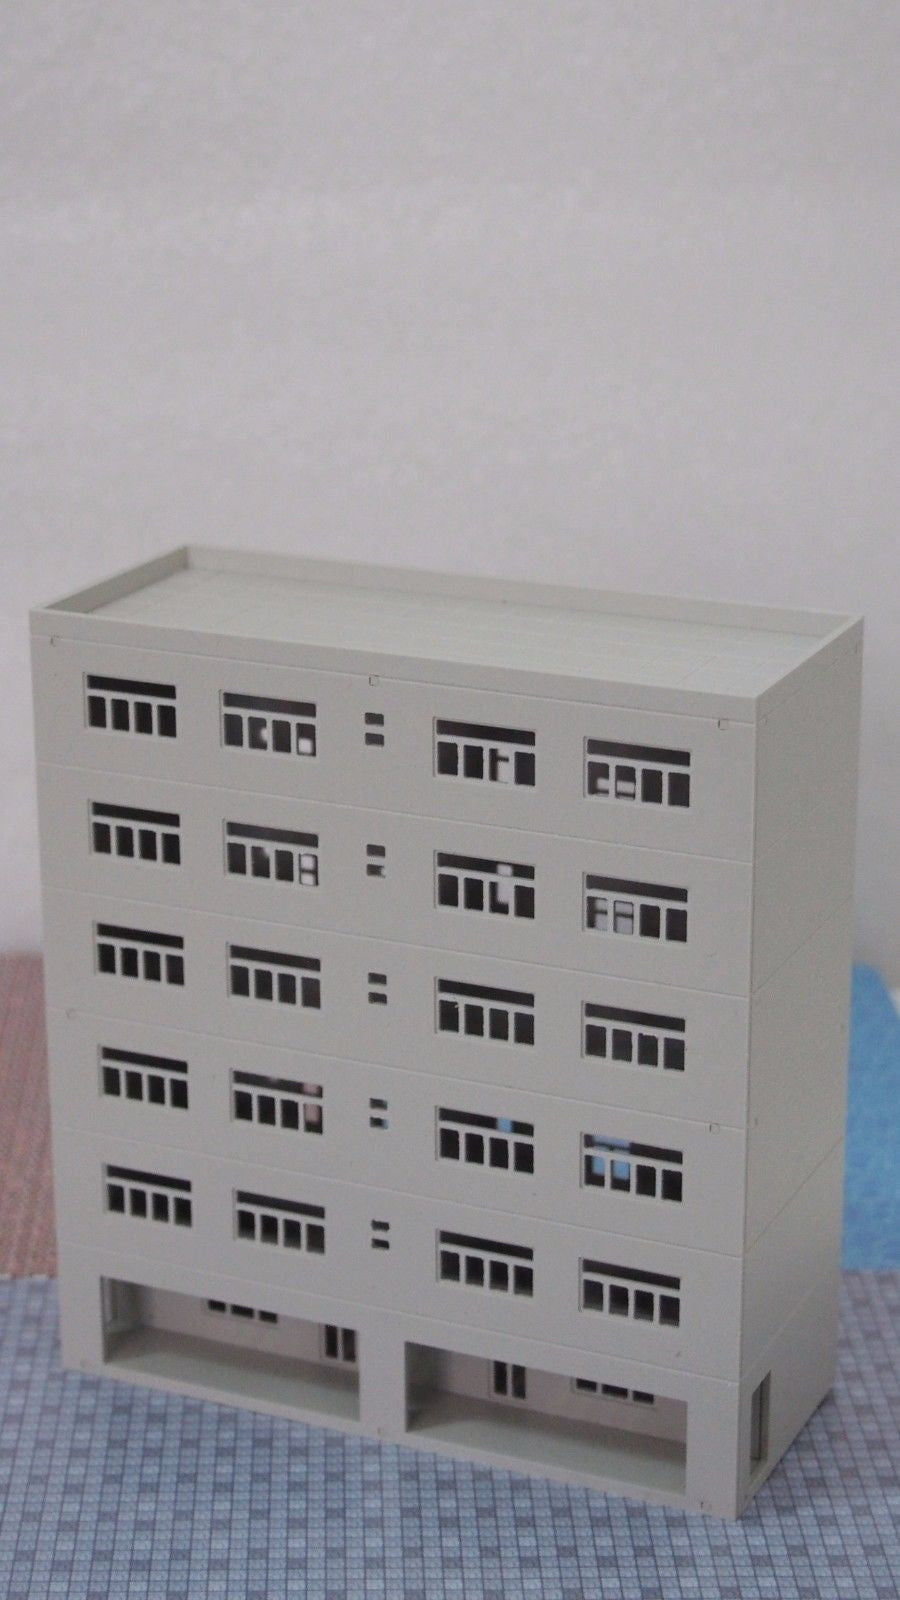 outland models Railway Colored Modern City Stylish Commercial Building N Scale